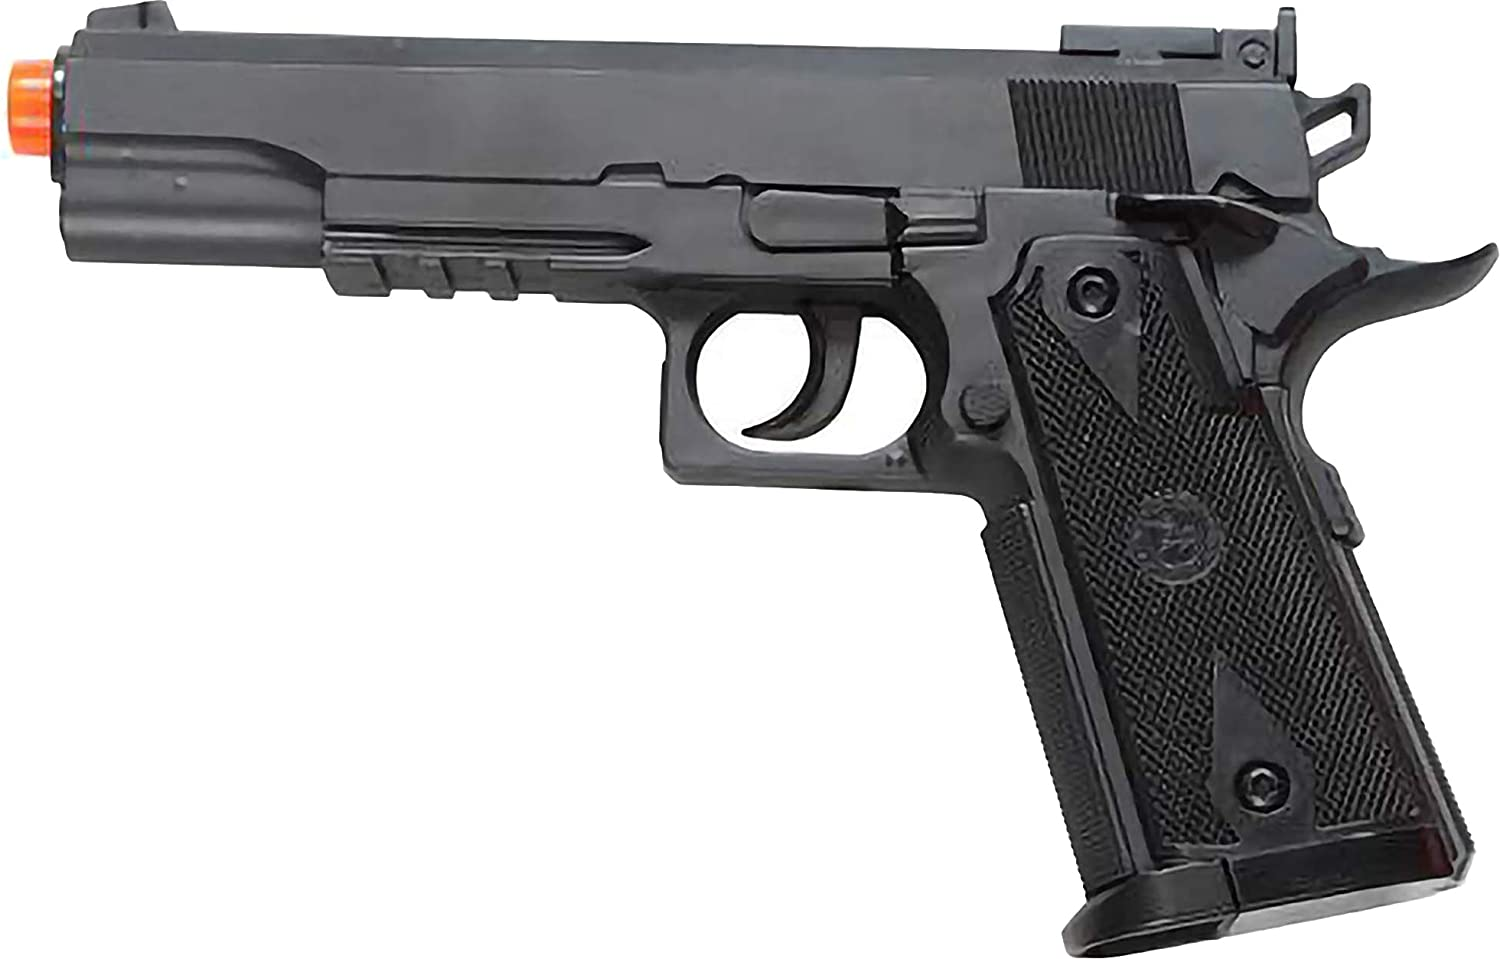 Evike Win Gun High Power 1911 Co2 Pistol Gas Max 86% OFF B Powered Airsoft - Shipping included